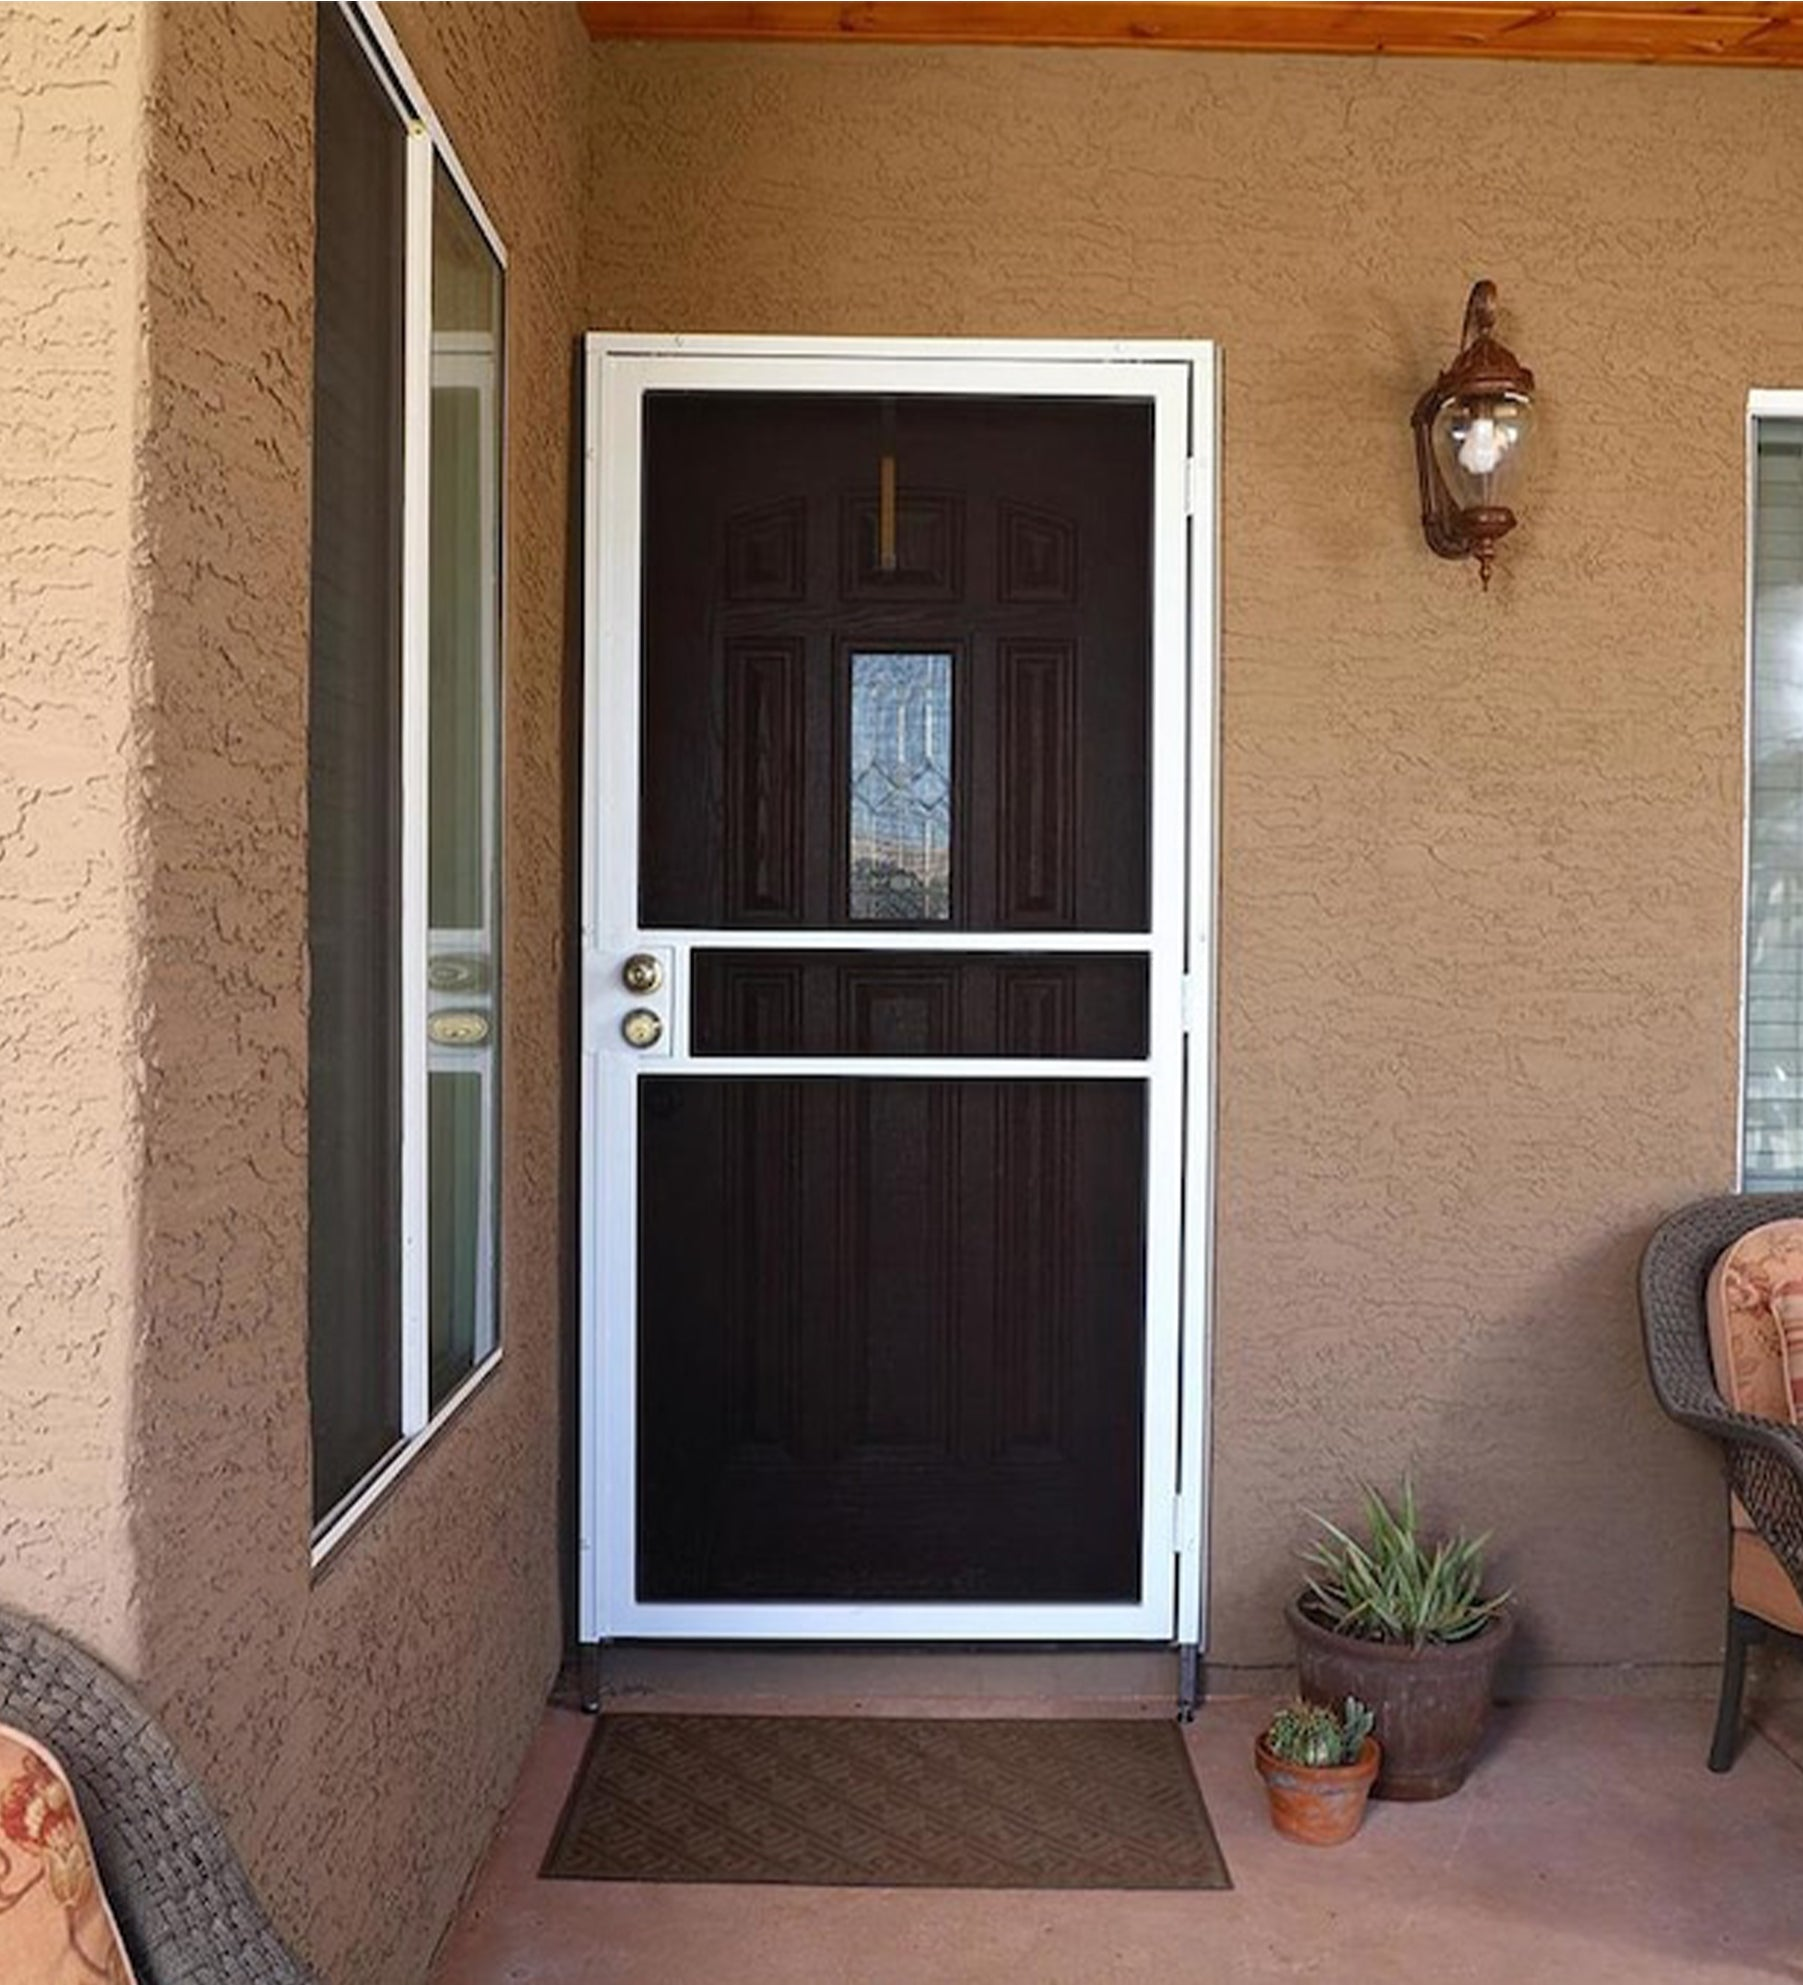 INSTALLED Gatehouse Pasadena Steel Surface Mount Single Security Door. STARTING $570